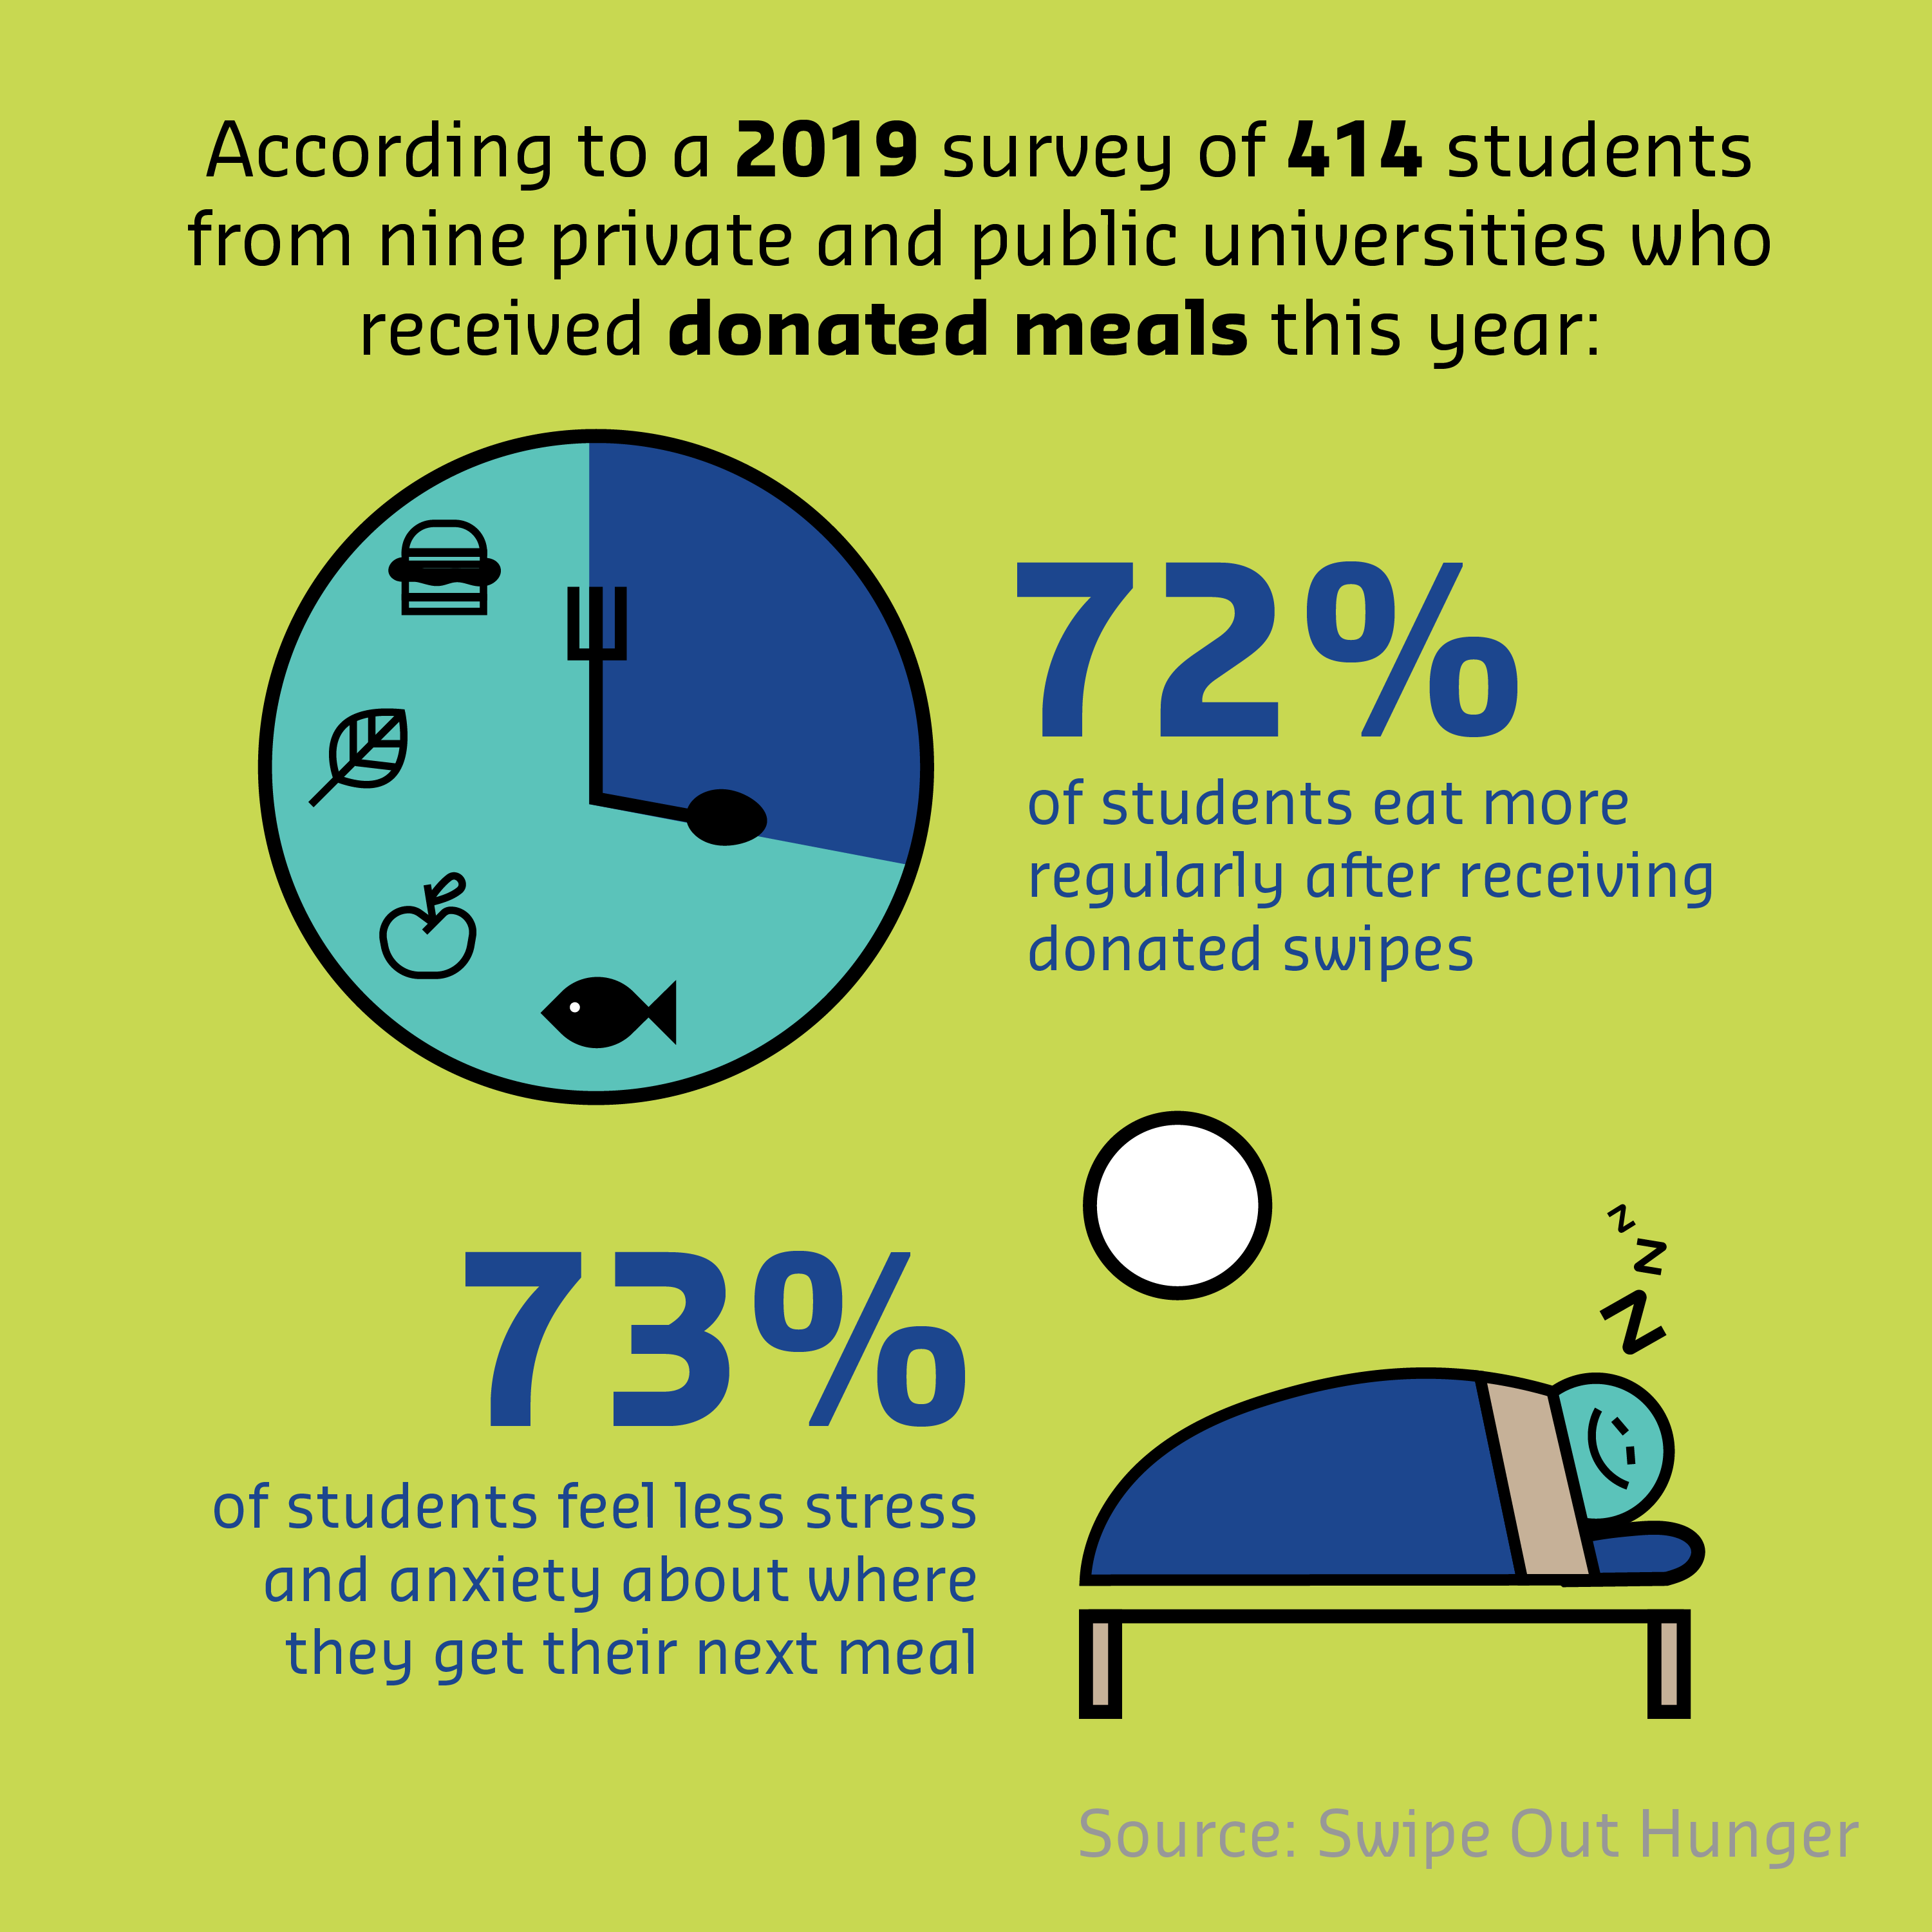 Swipe Out Hunger infographic